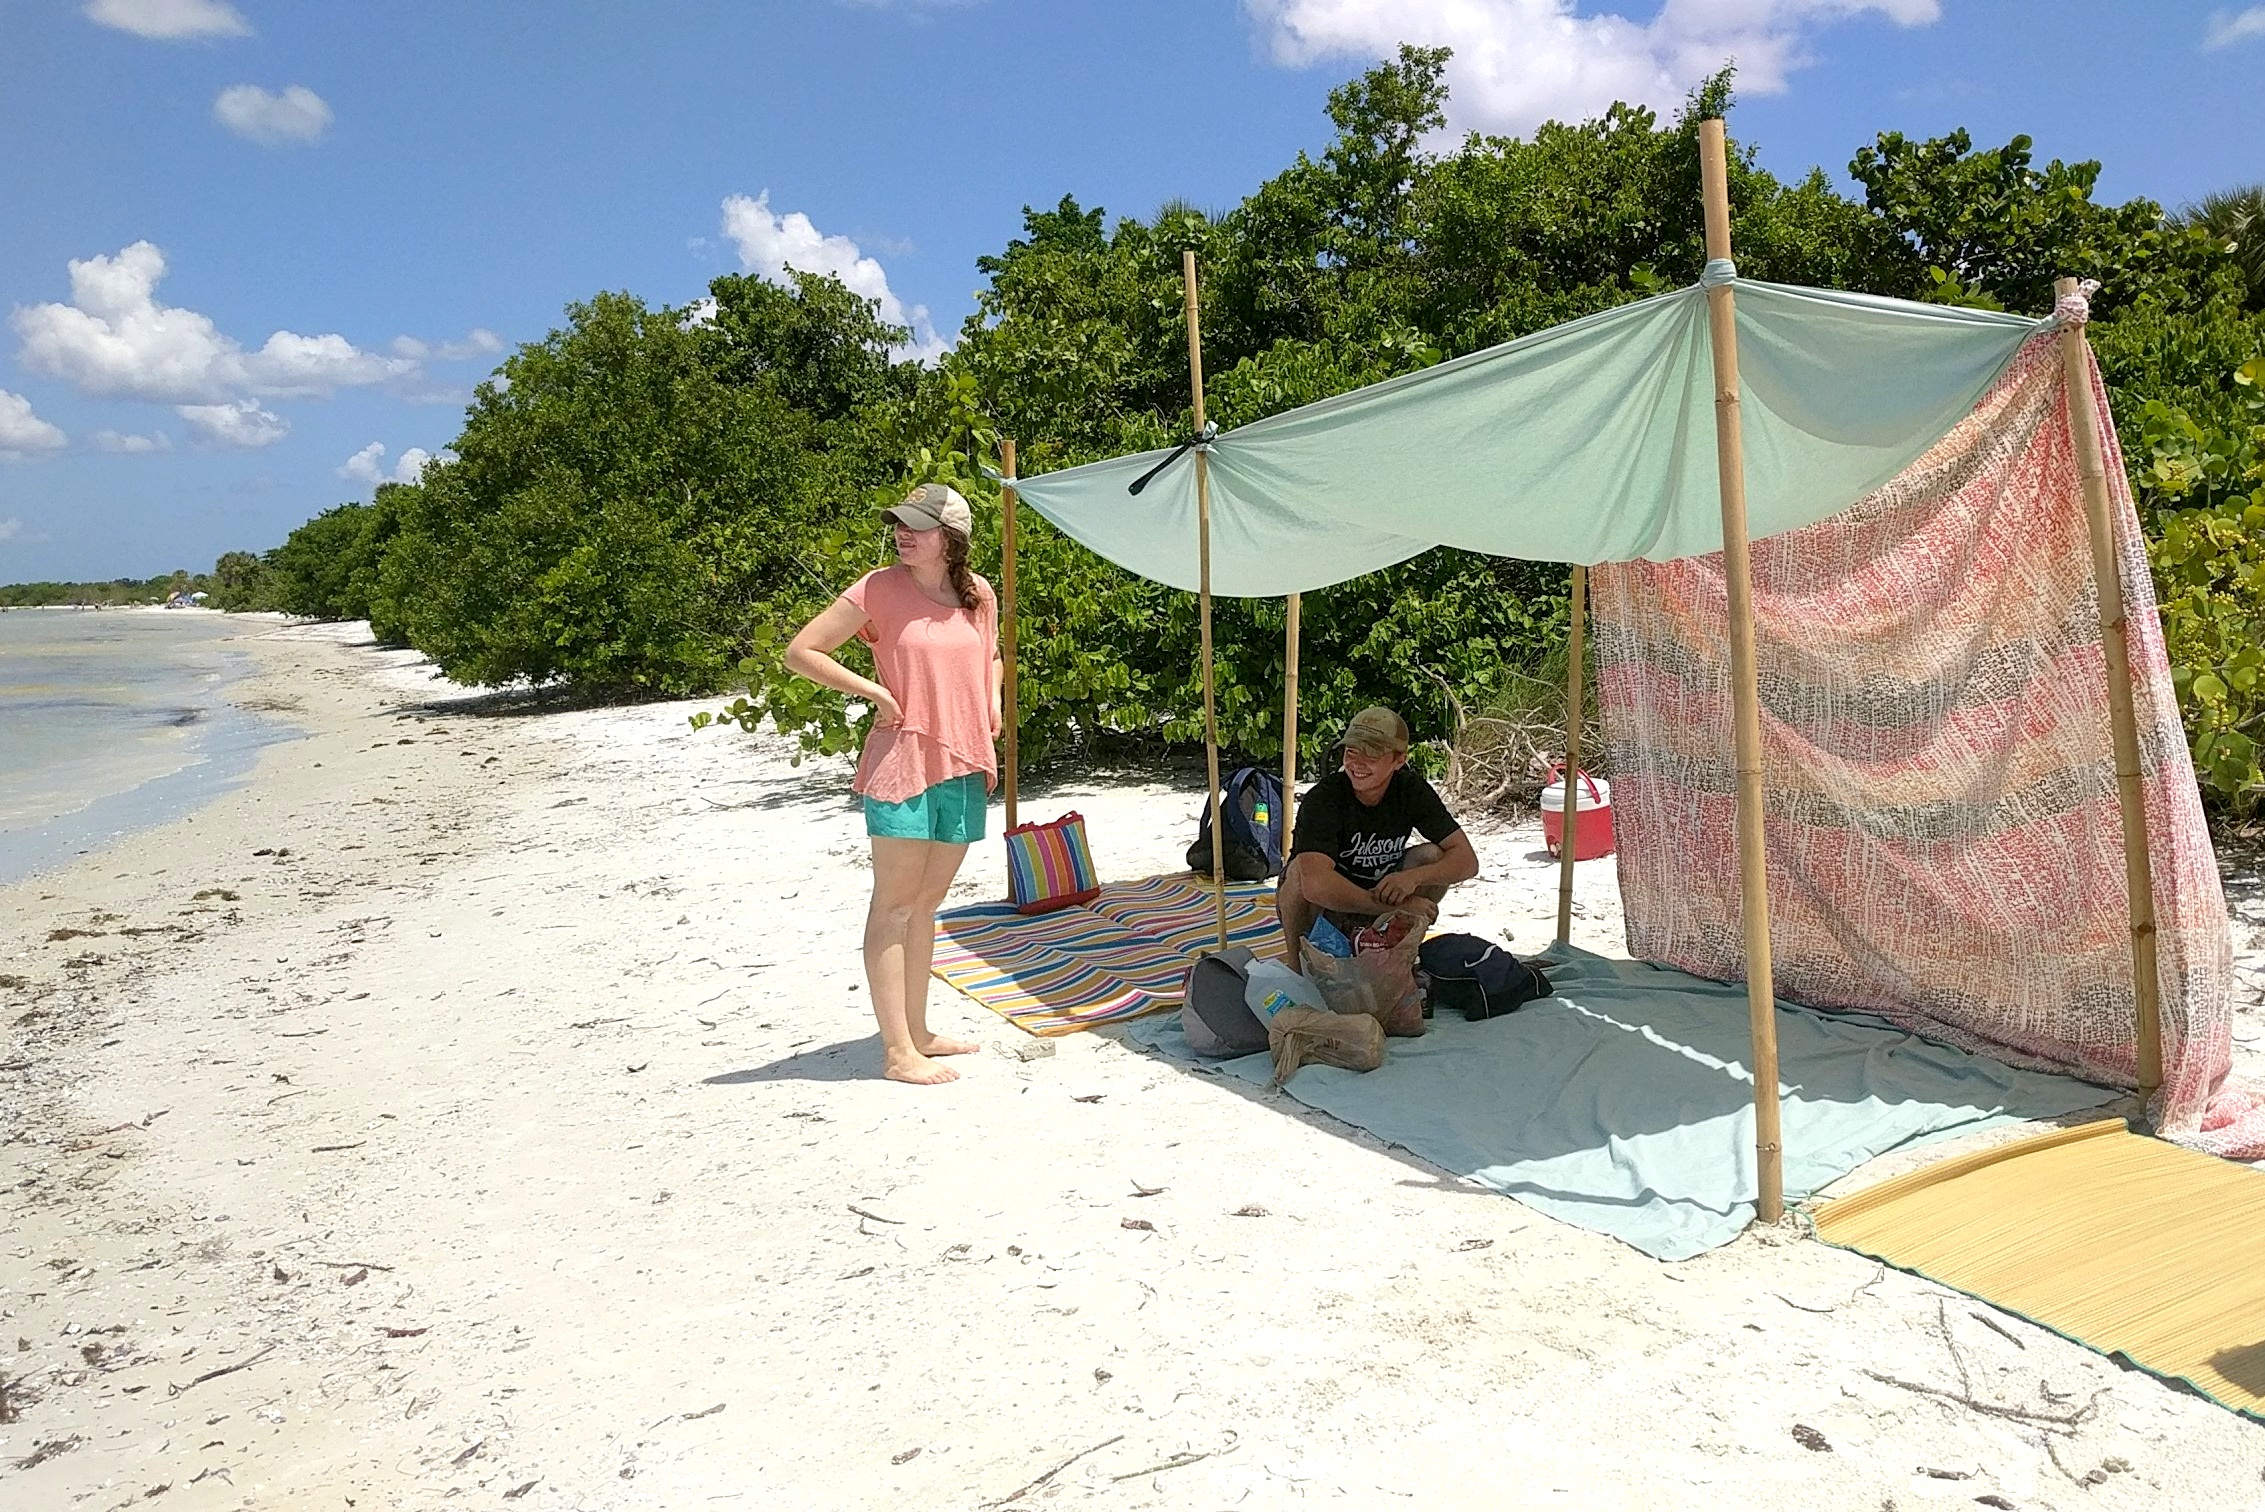 This tent was constructed by the ECHO interns on a trip to the beach on July 4th.